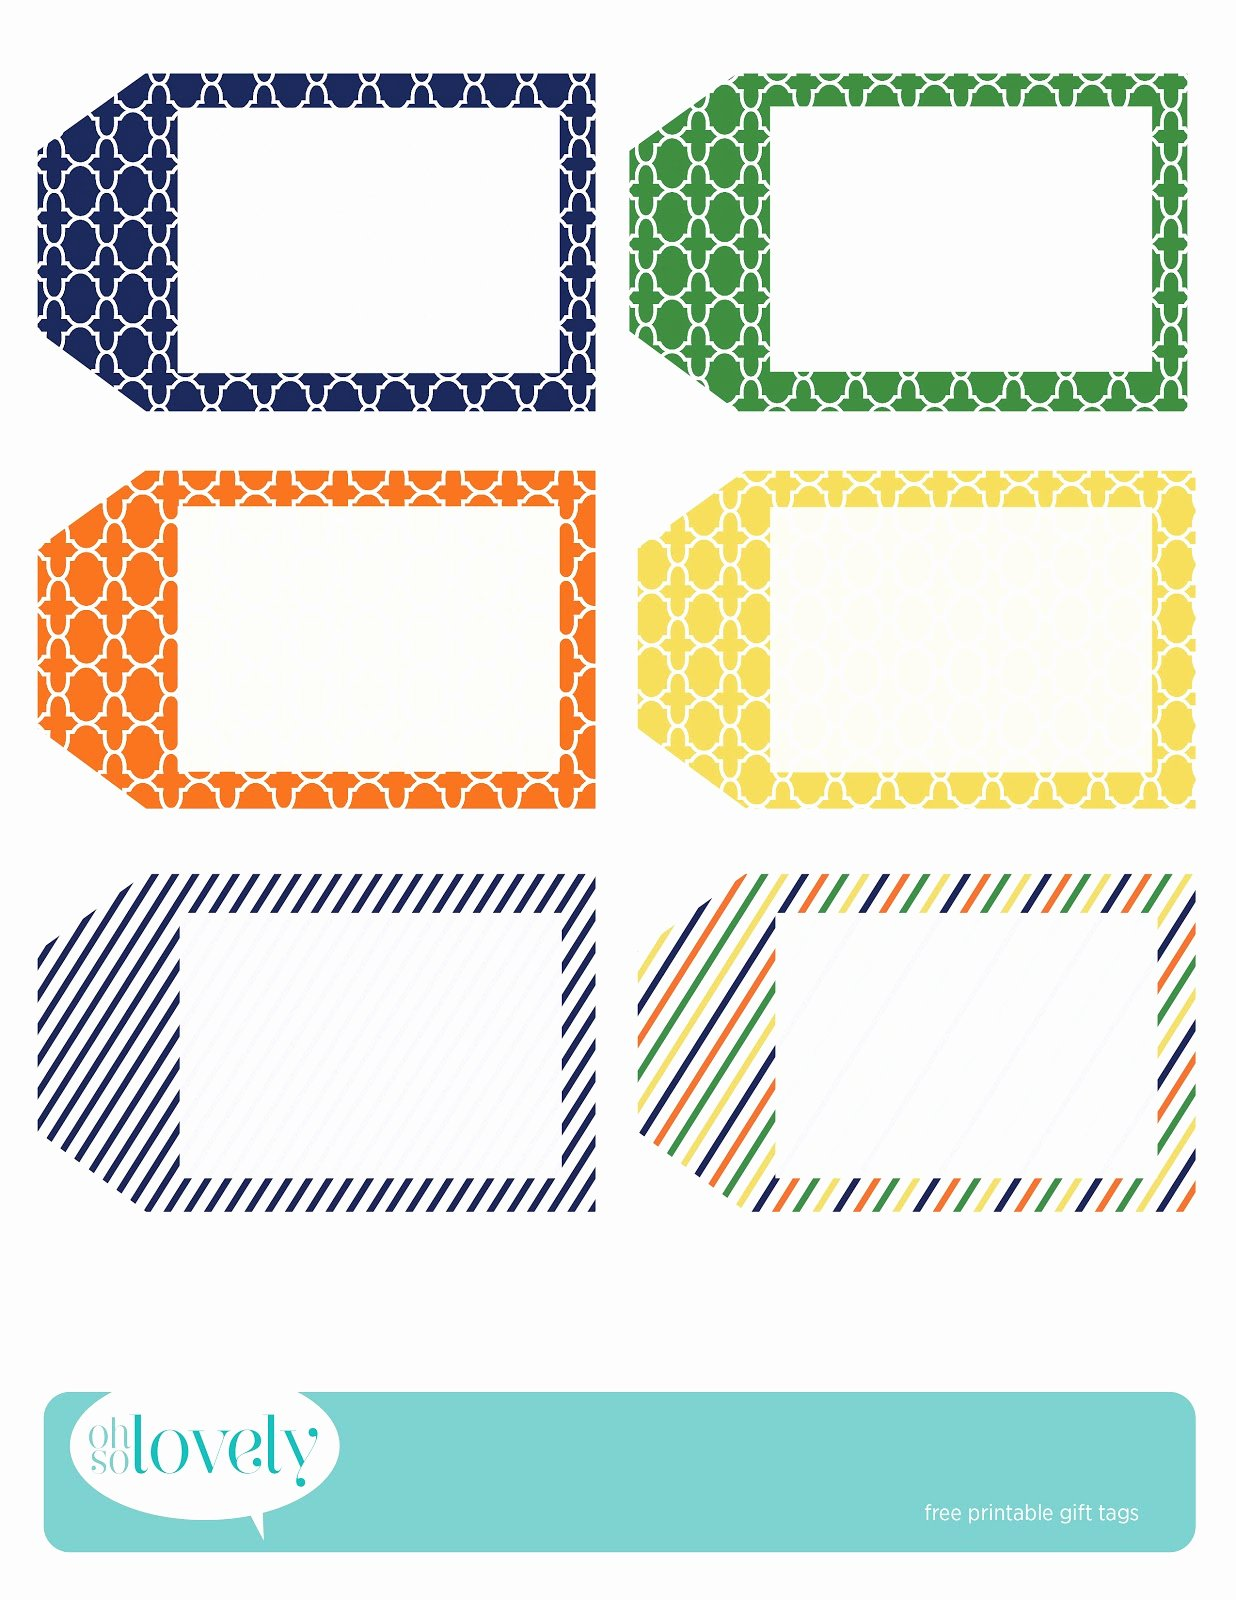 Printable Gift Tags Template Lovely Freebies Gift Tags Oh so Lovely Blog